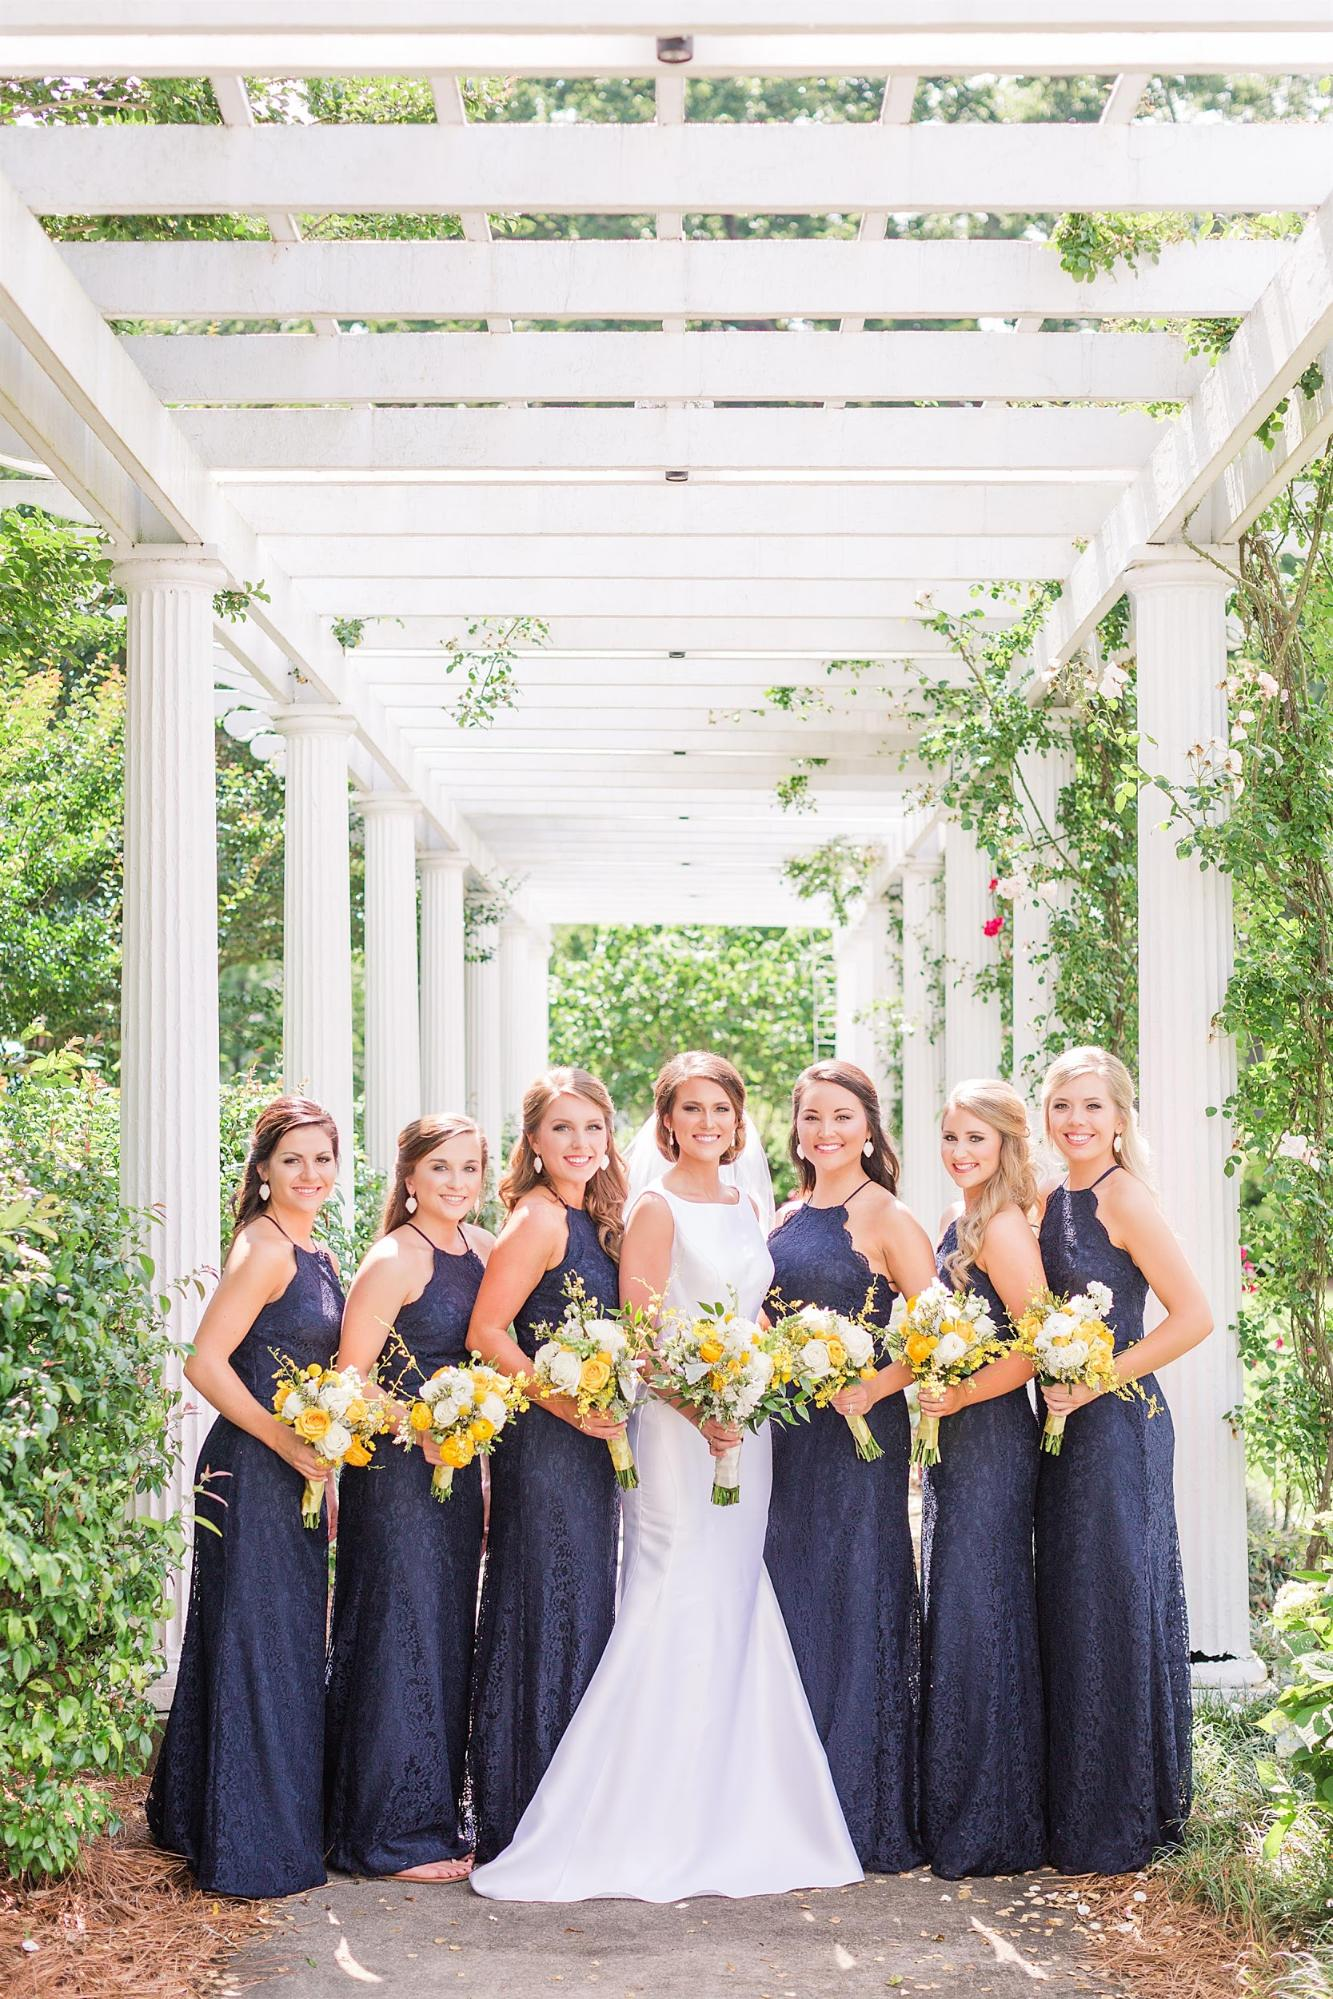 How To Choose Your Bridesmaid Dresses The Ultimate Guide